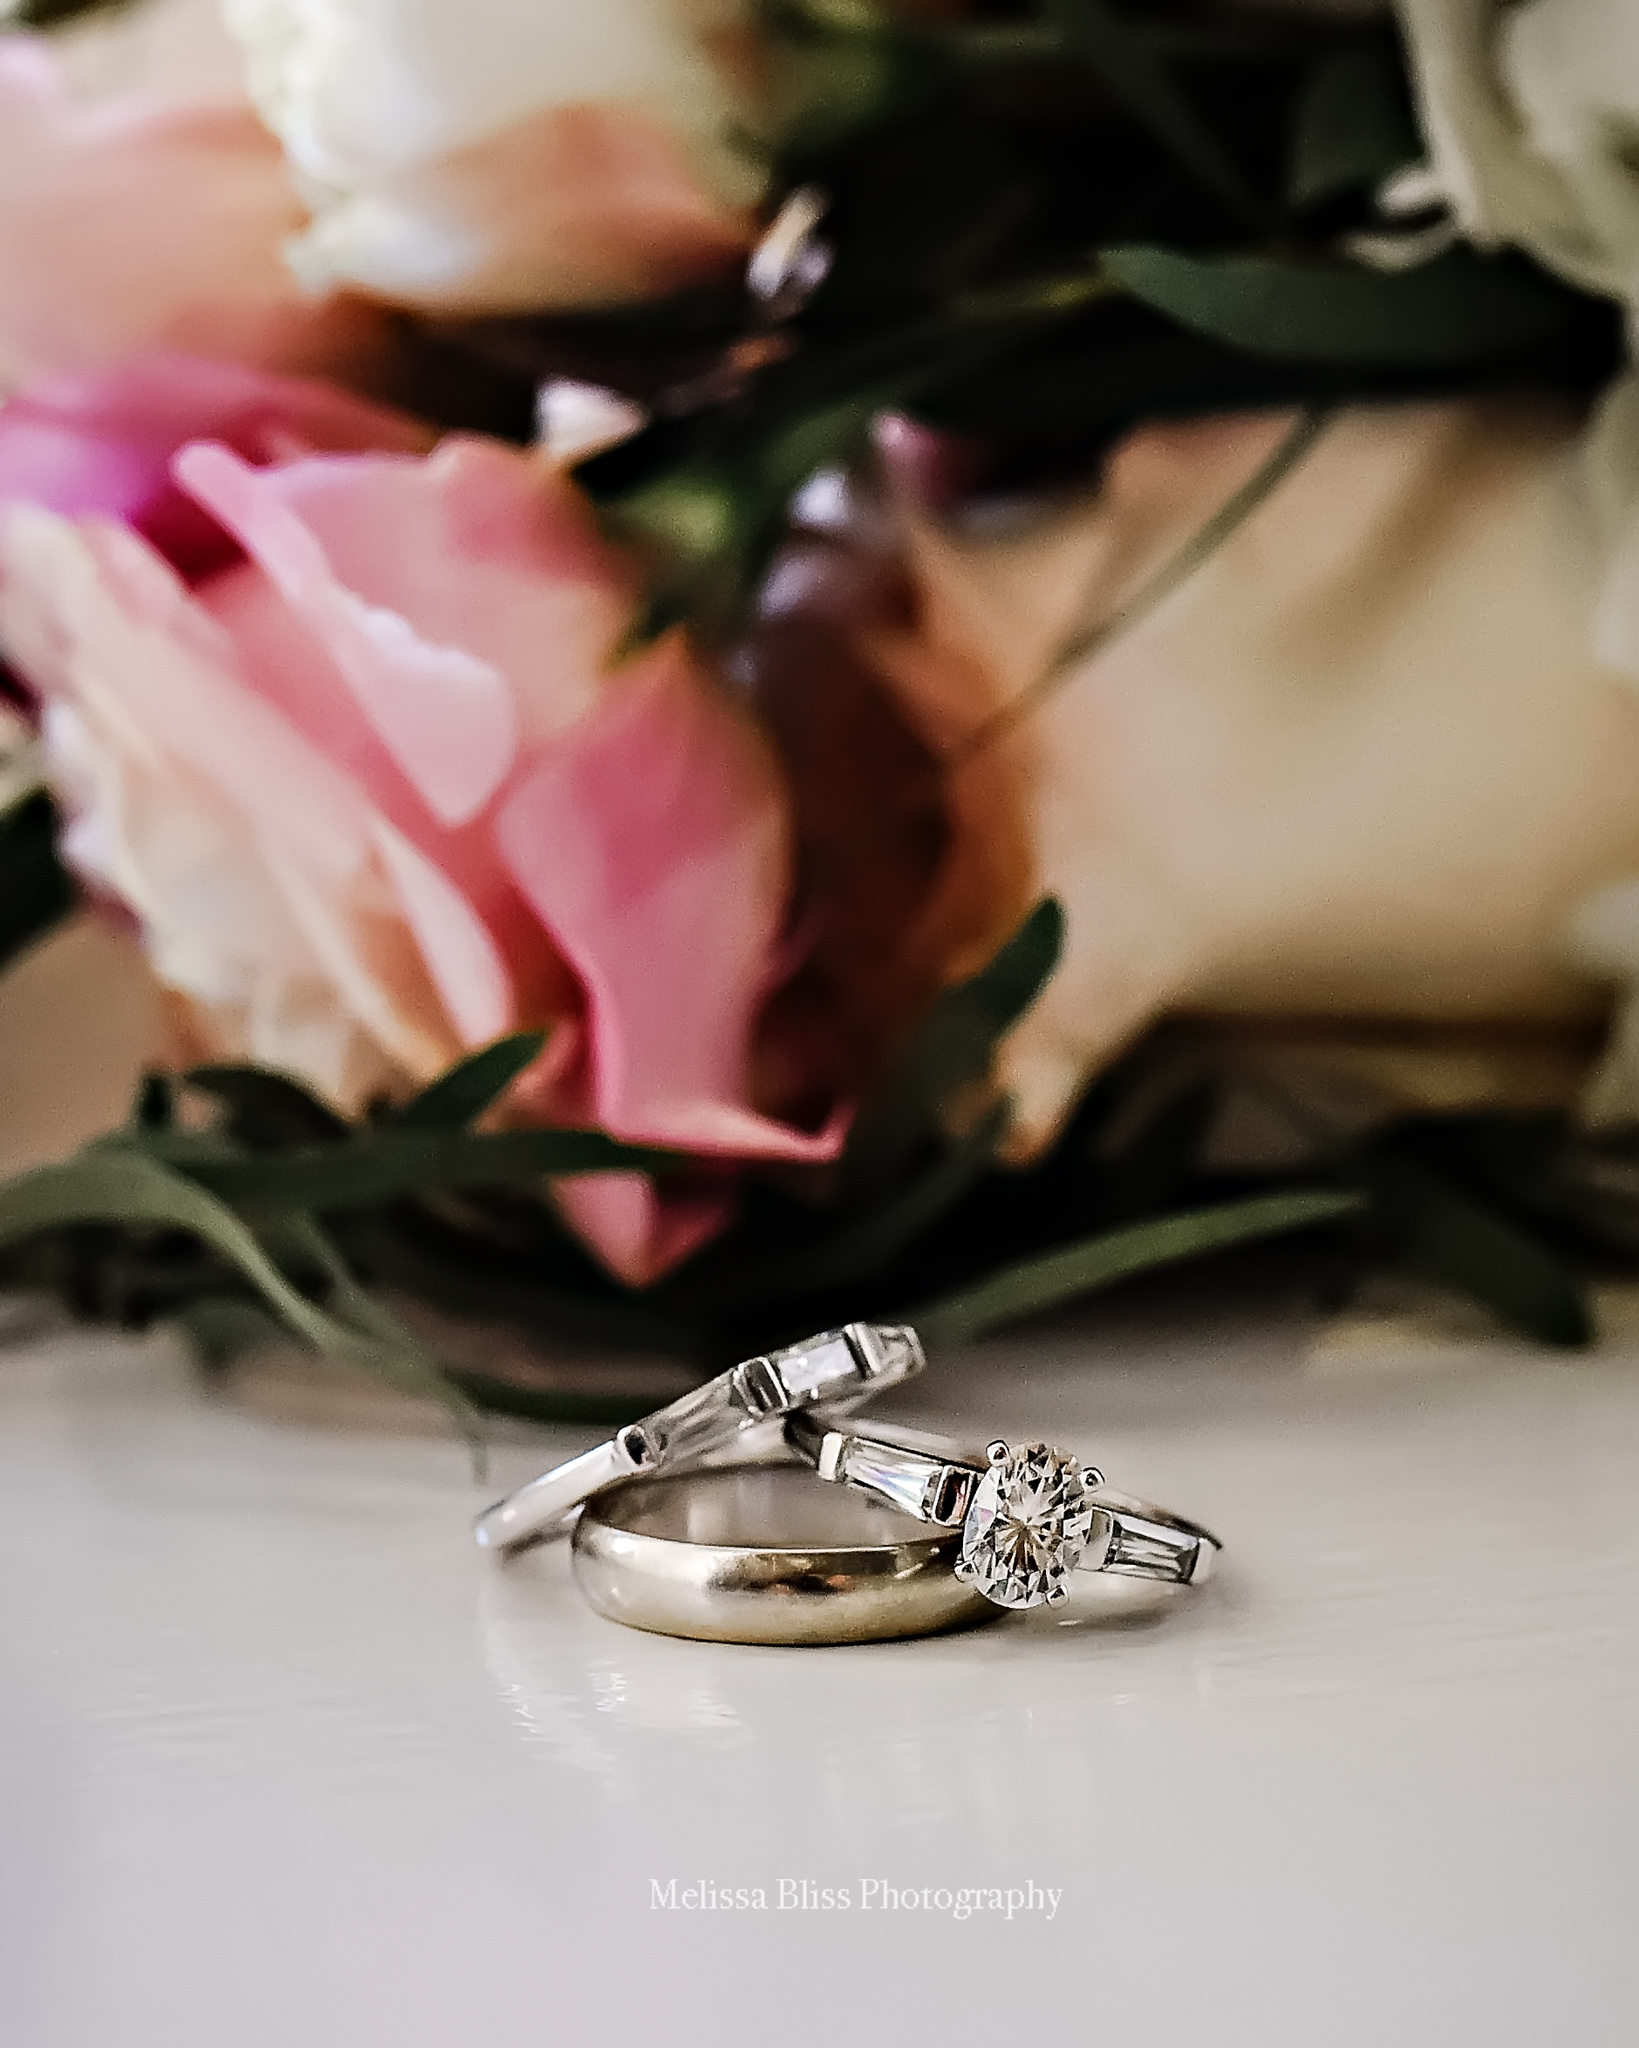 ring-shot-at-the-historic-post-office-wedding-melissa-bliss-photography-hampton-roads-photographer-melissa-bliss-photography.jpg